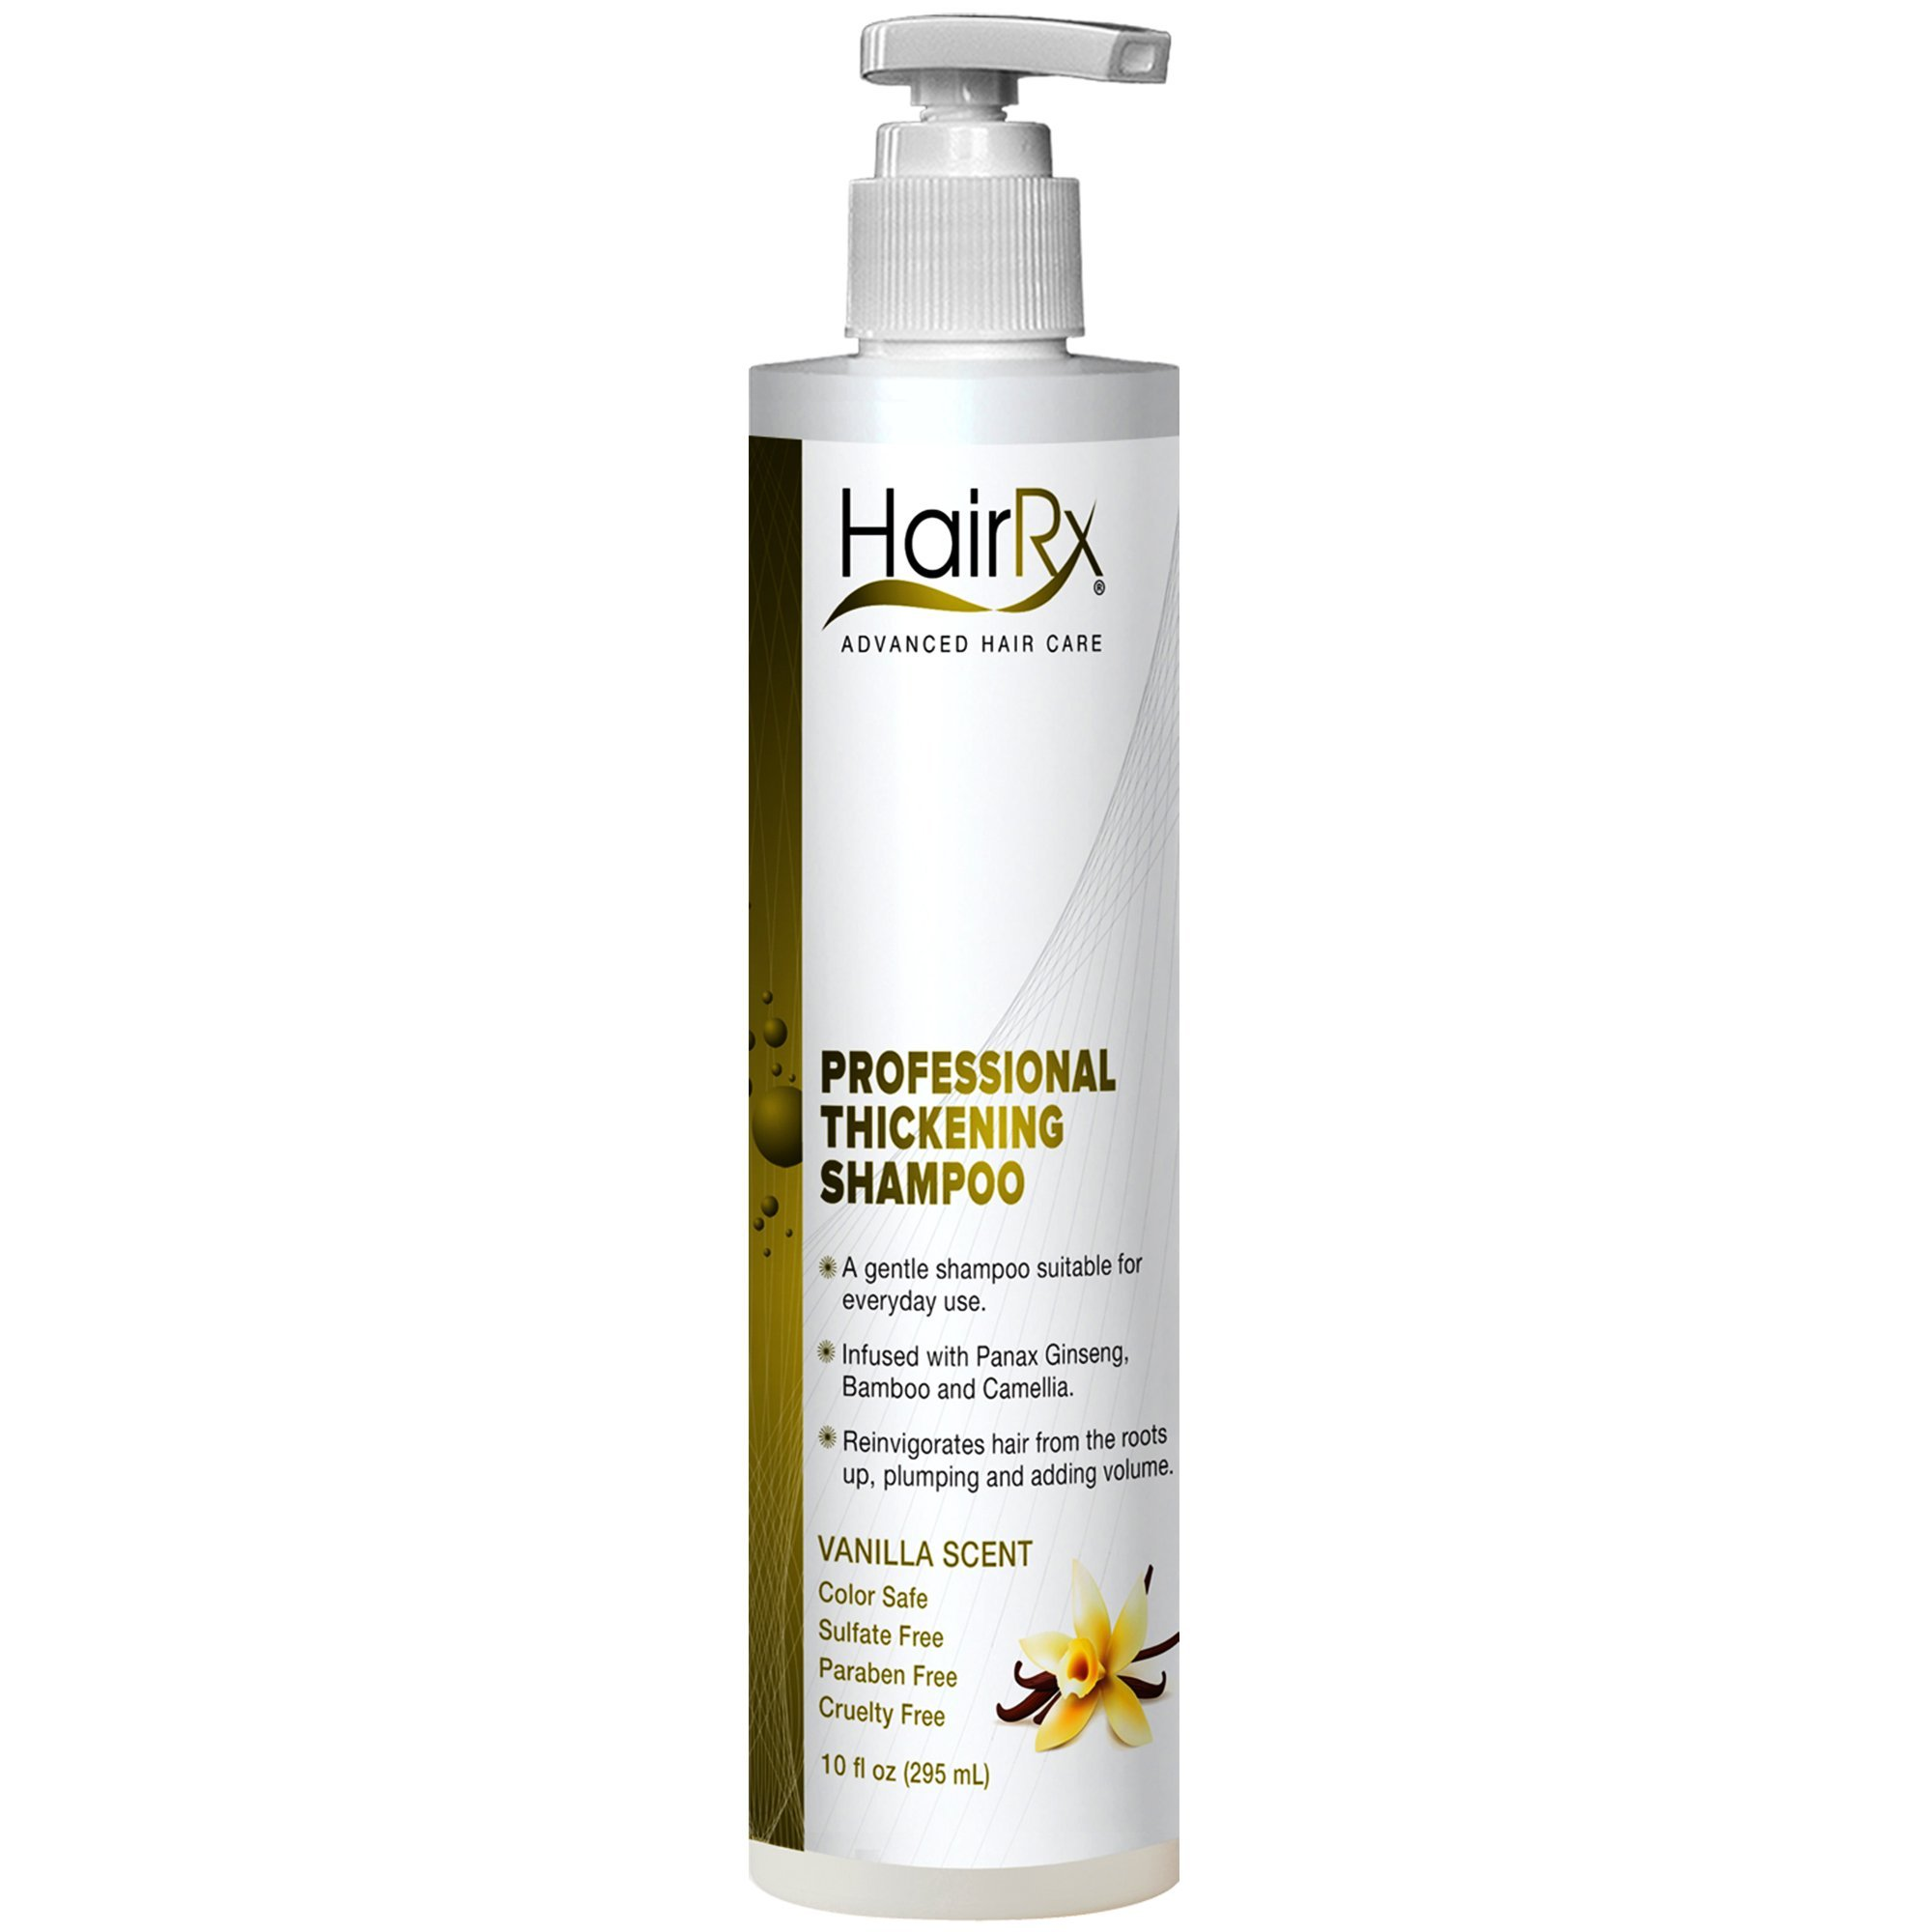 HairRx Professional Thickening Shampoo with Pump, Light Lather, Vanilla Scent, 10 Ounce